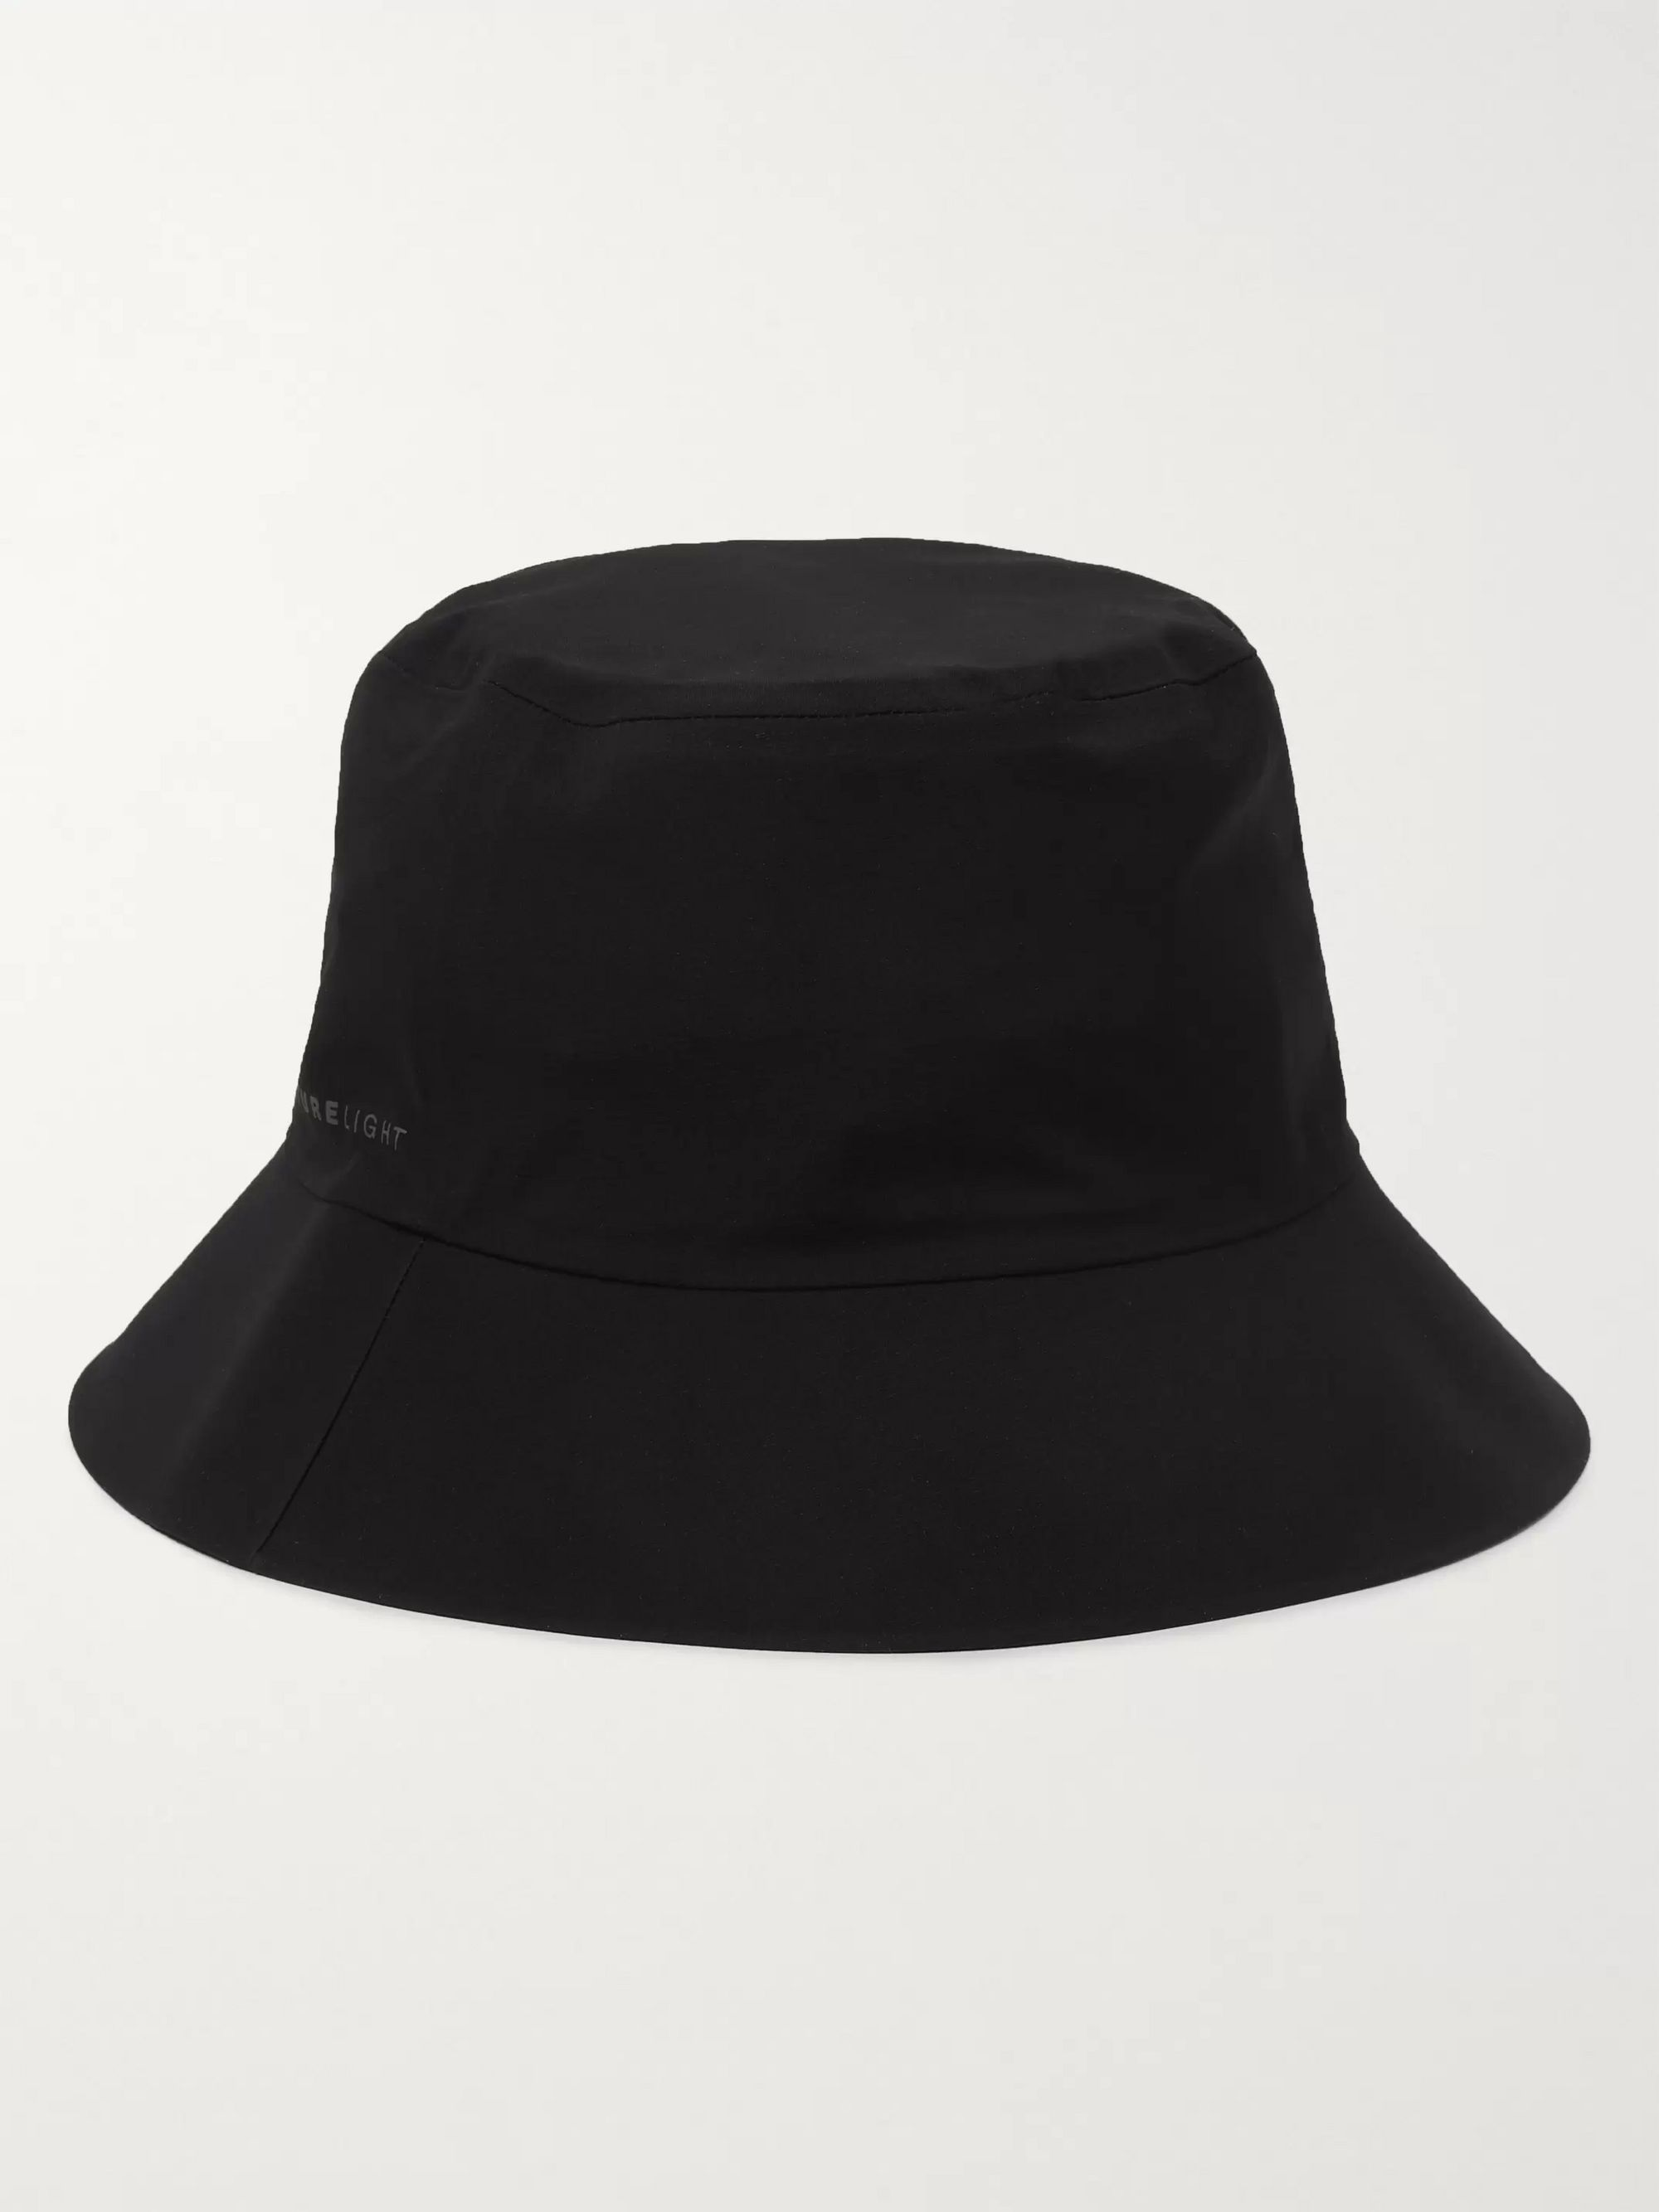 The North Face FUTURELIGHT Logo-Print Shell Bucket Hat